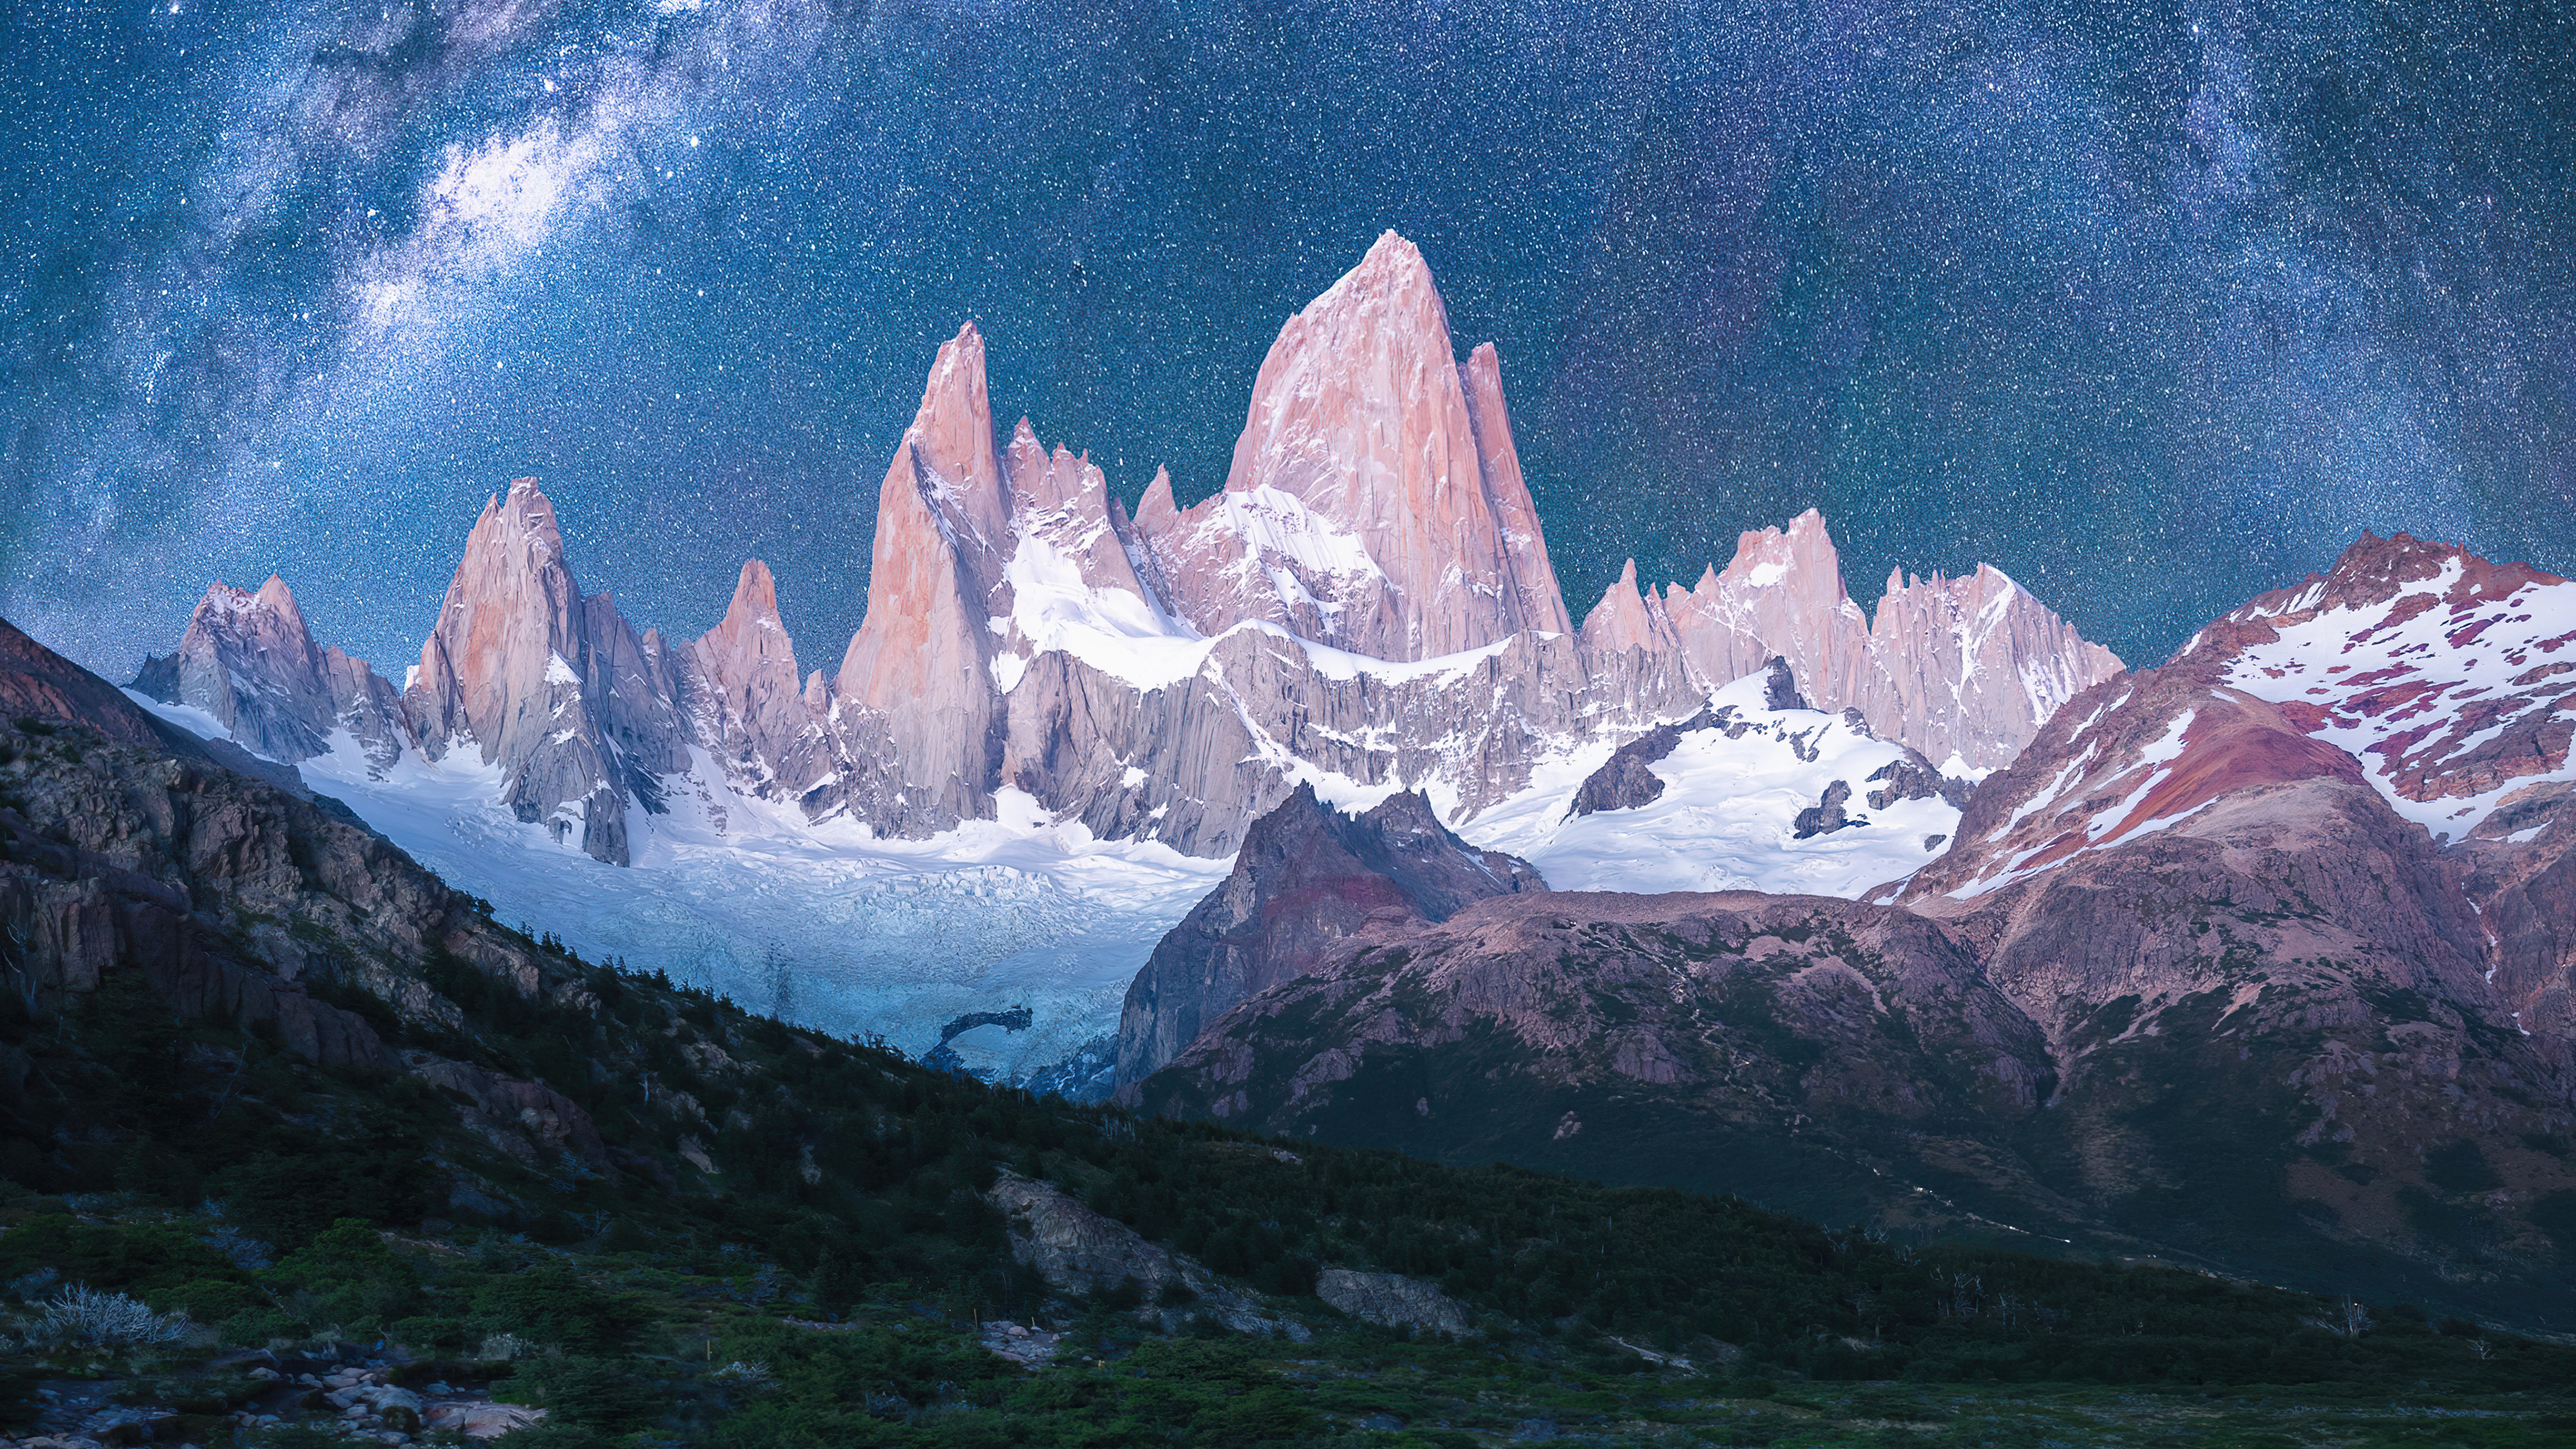 Wallpaper Mountains with snow under the stars